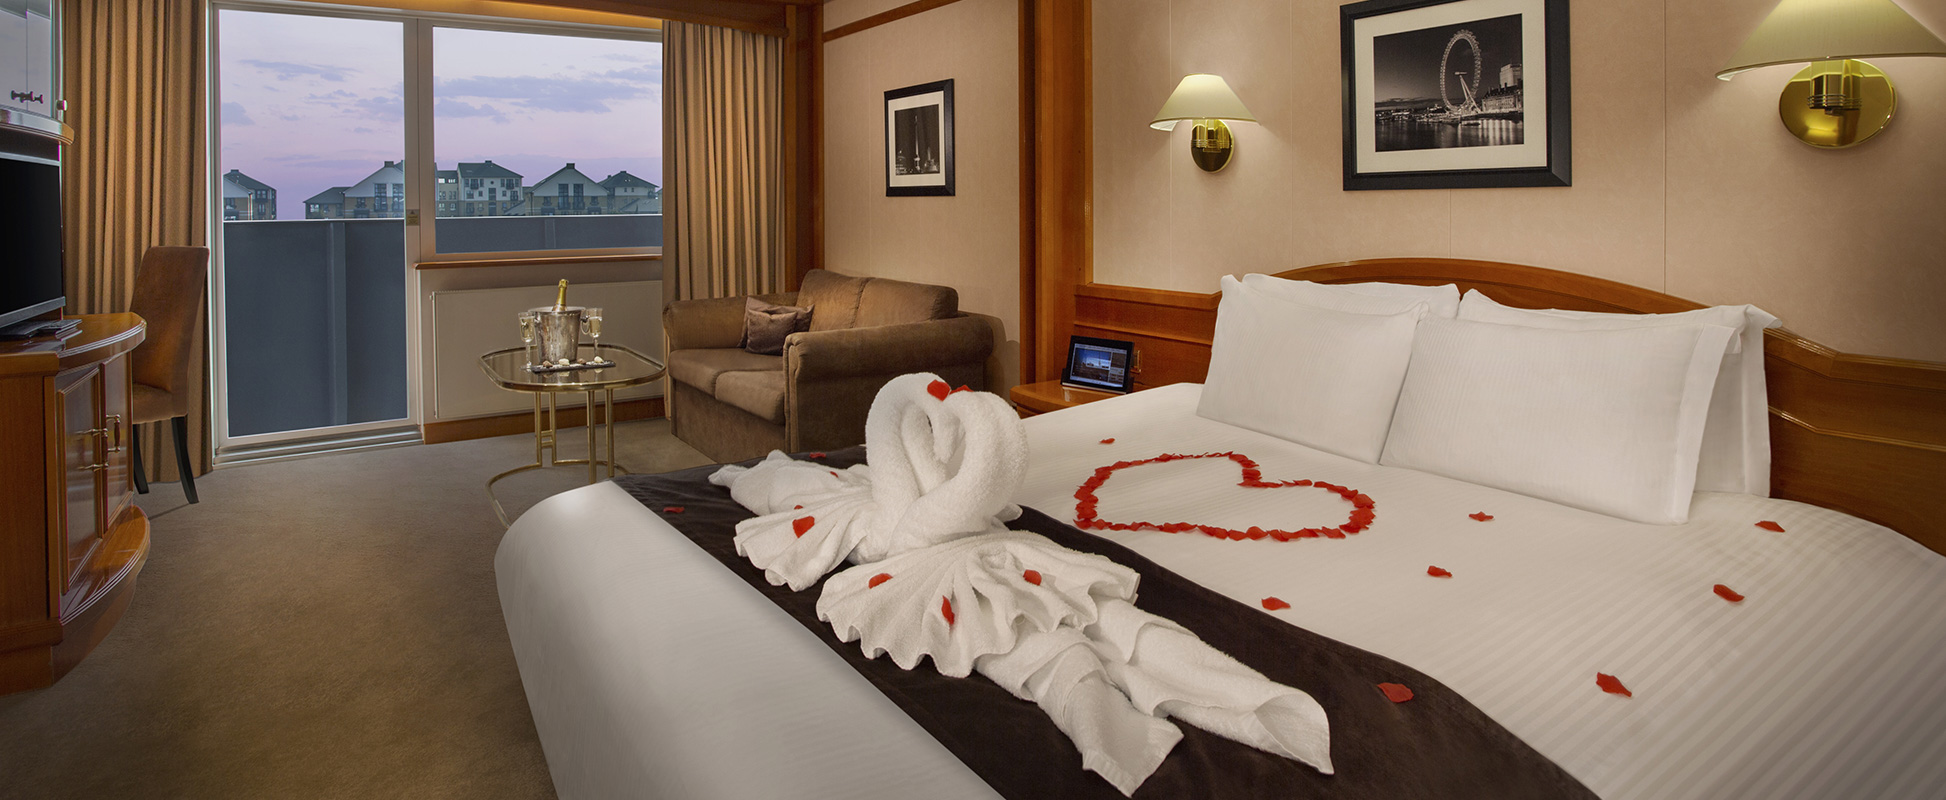 Pictures Of Romantic Hotel Rooms